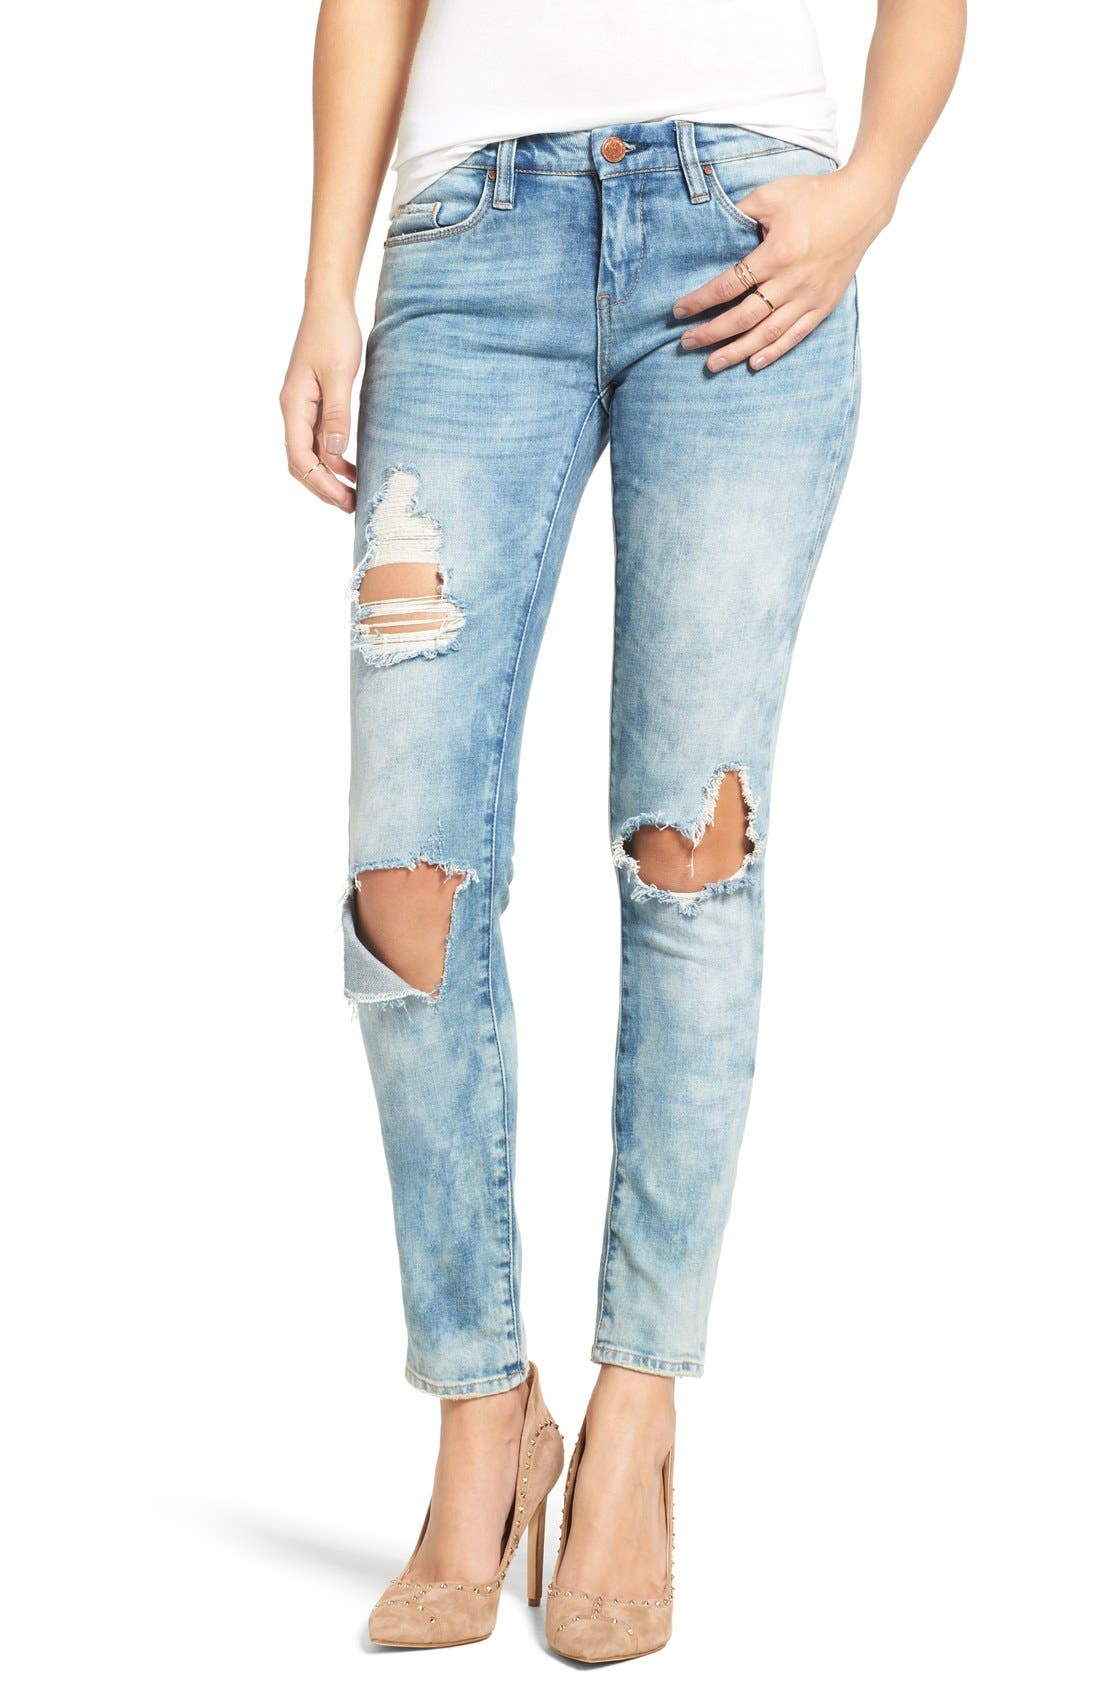 how to make distressed jeans at home